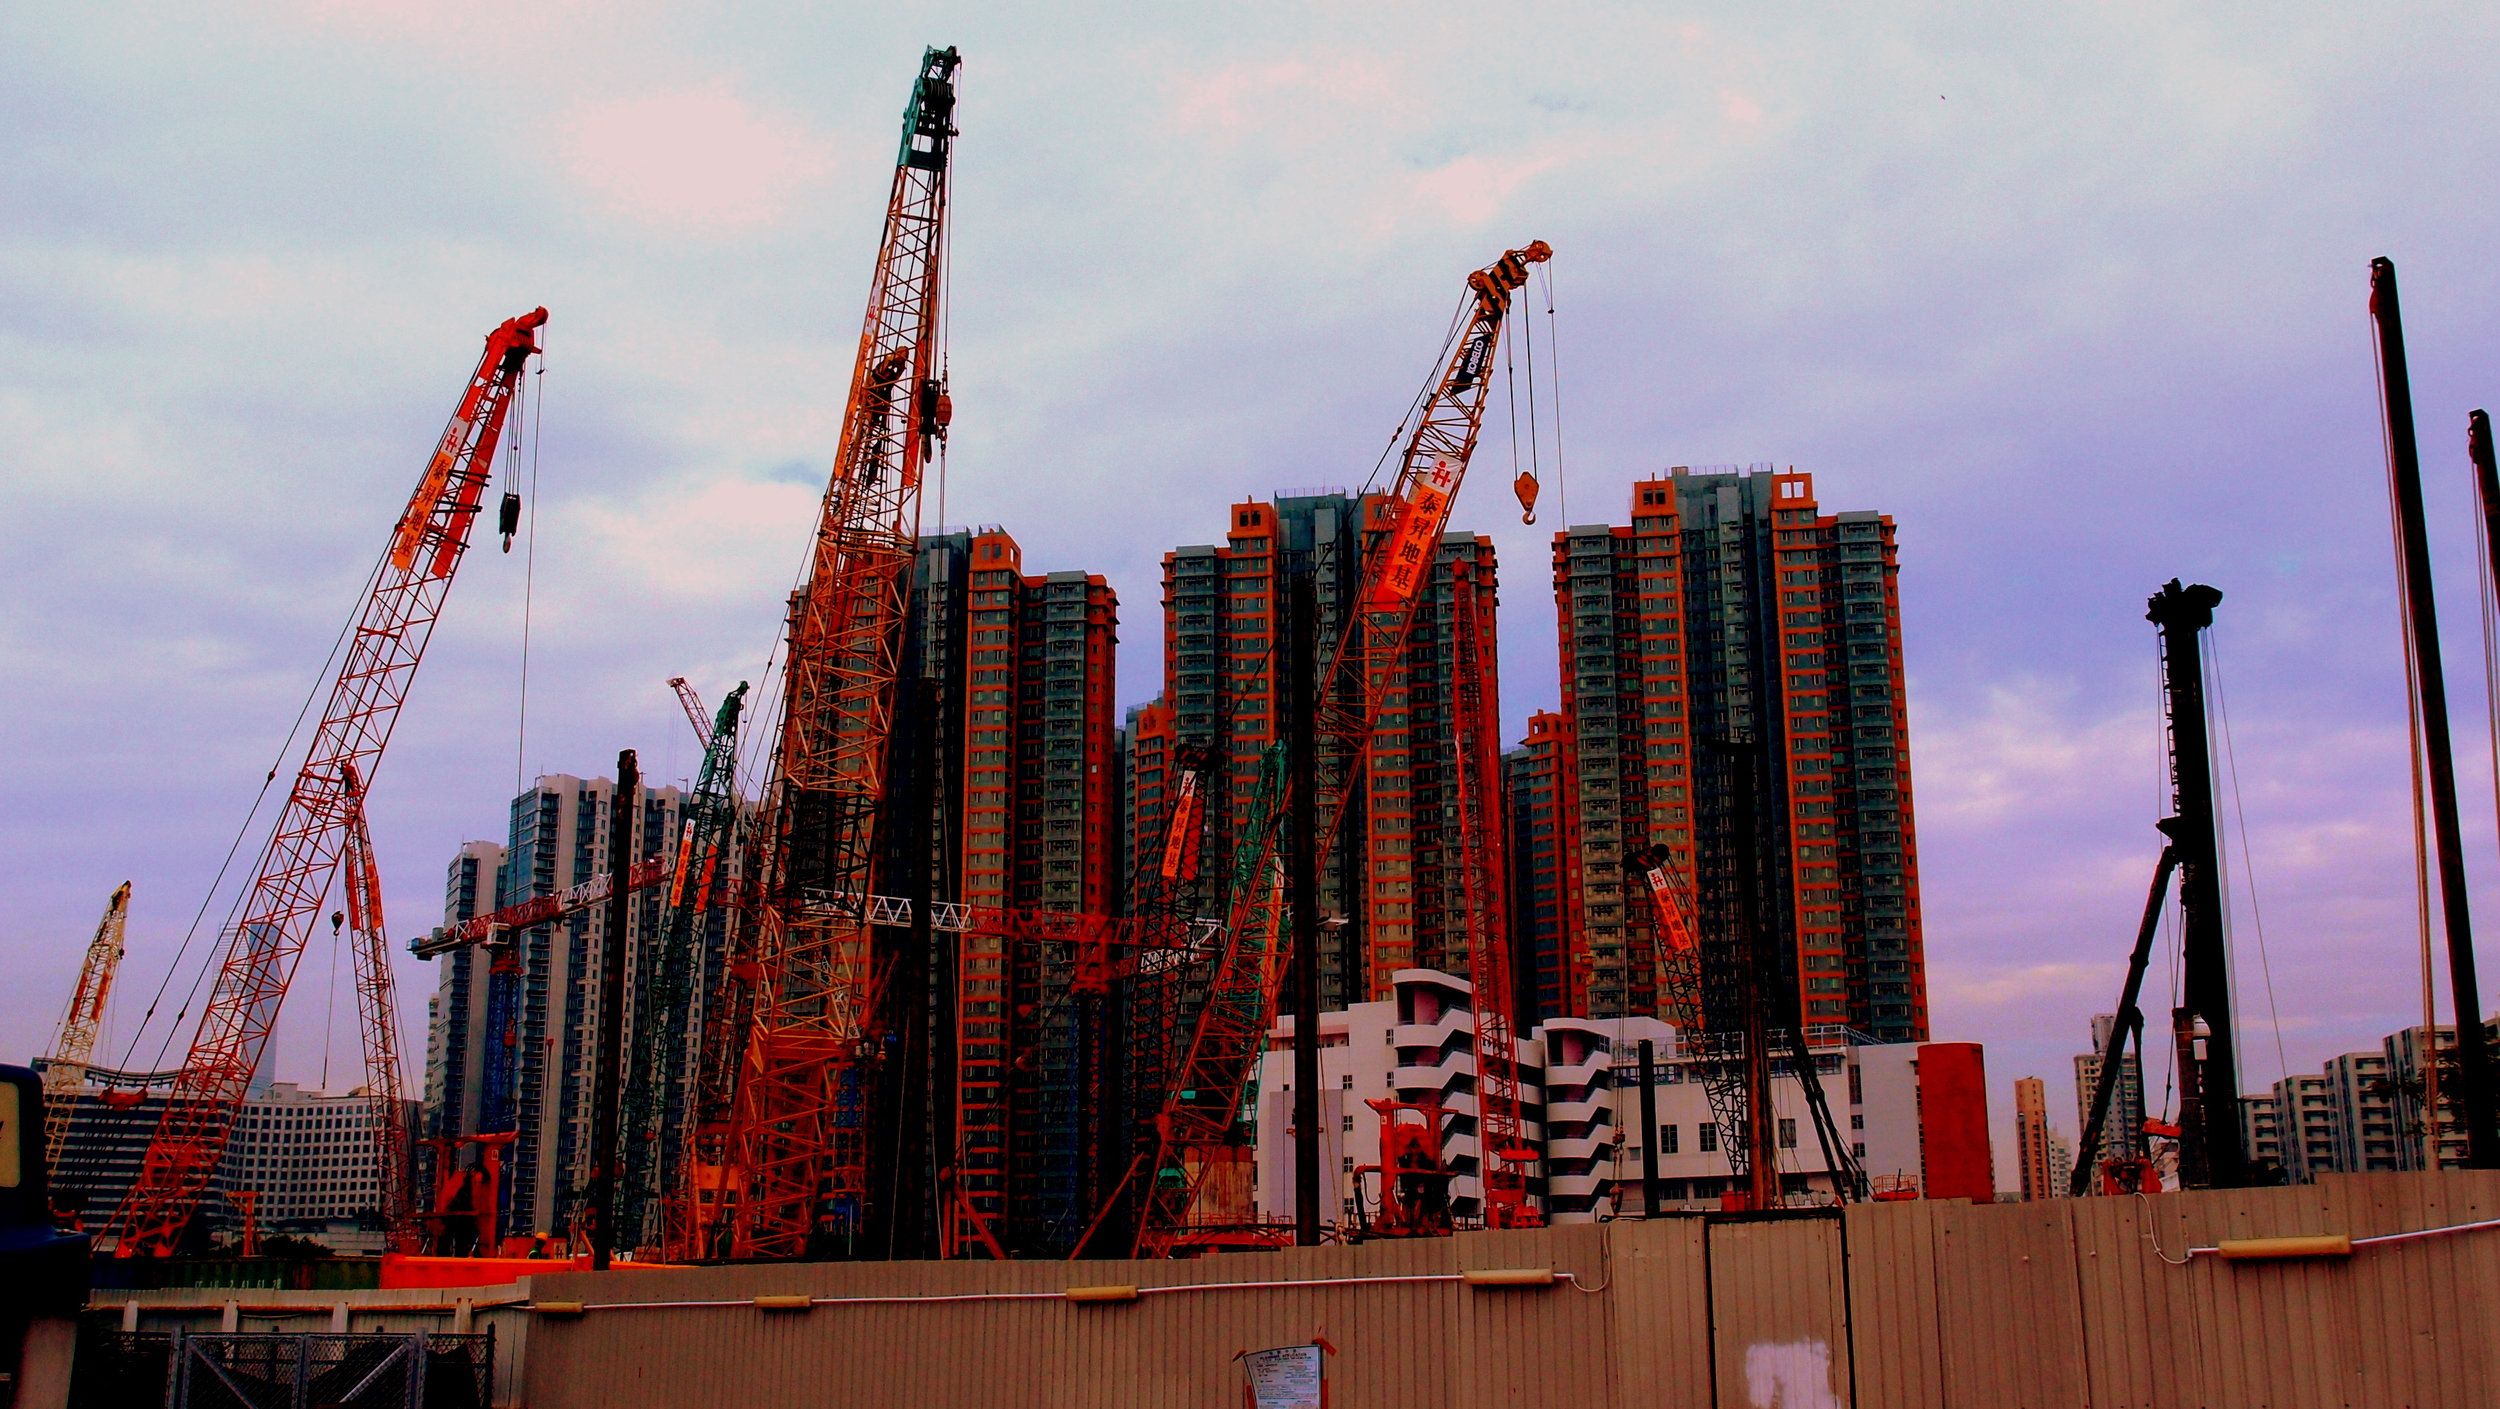 A typical building site in Hung Hom in Kowloon